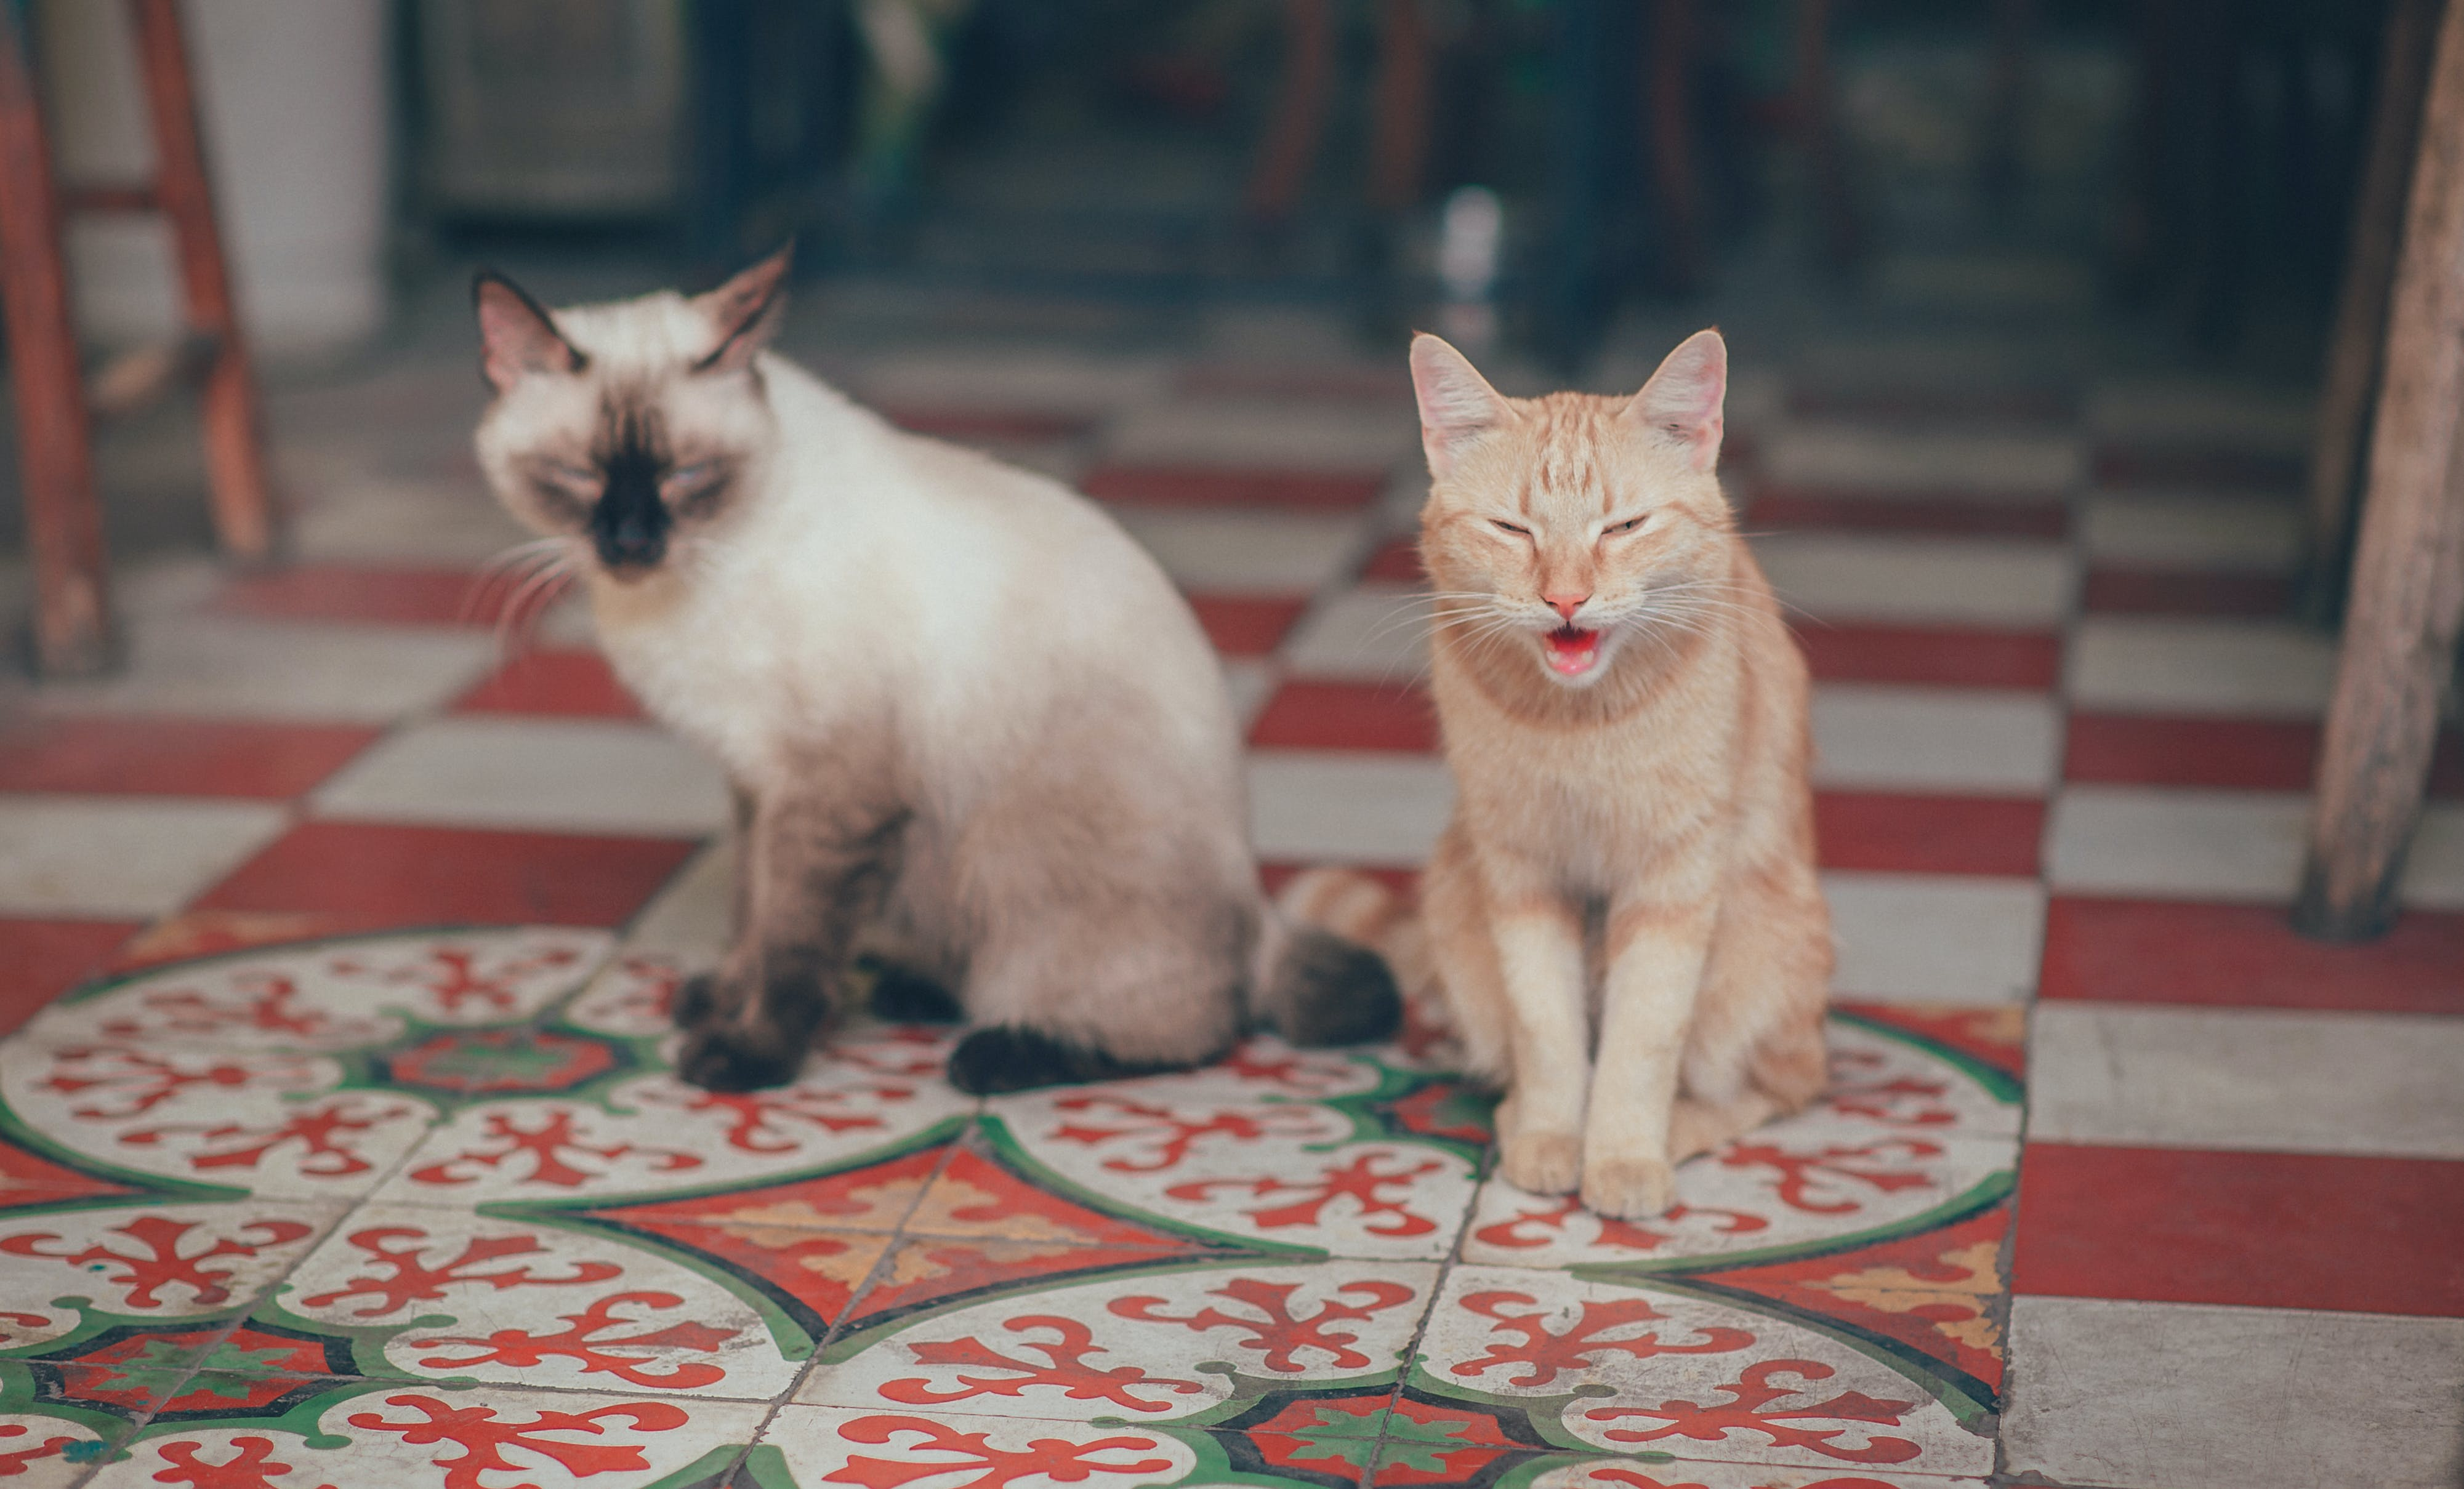 Close-Up Photography of Two Cats